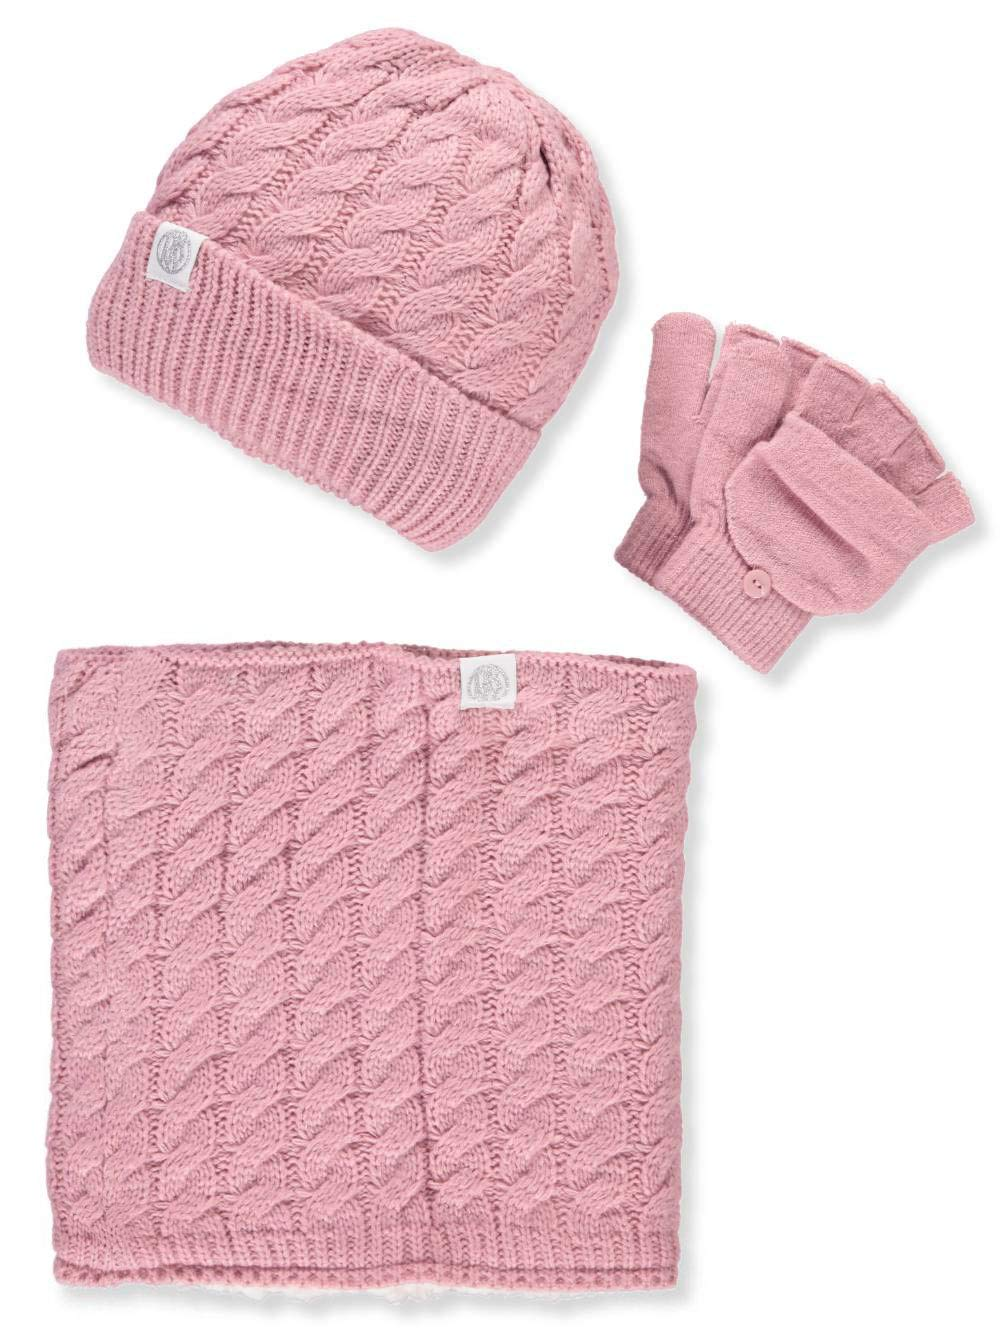 DKNY Girls' 3-Piece Winter Accessories Set - Pink, 7-16 by DKNY (Image #1)